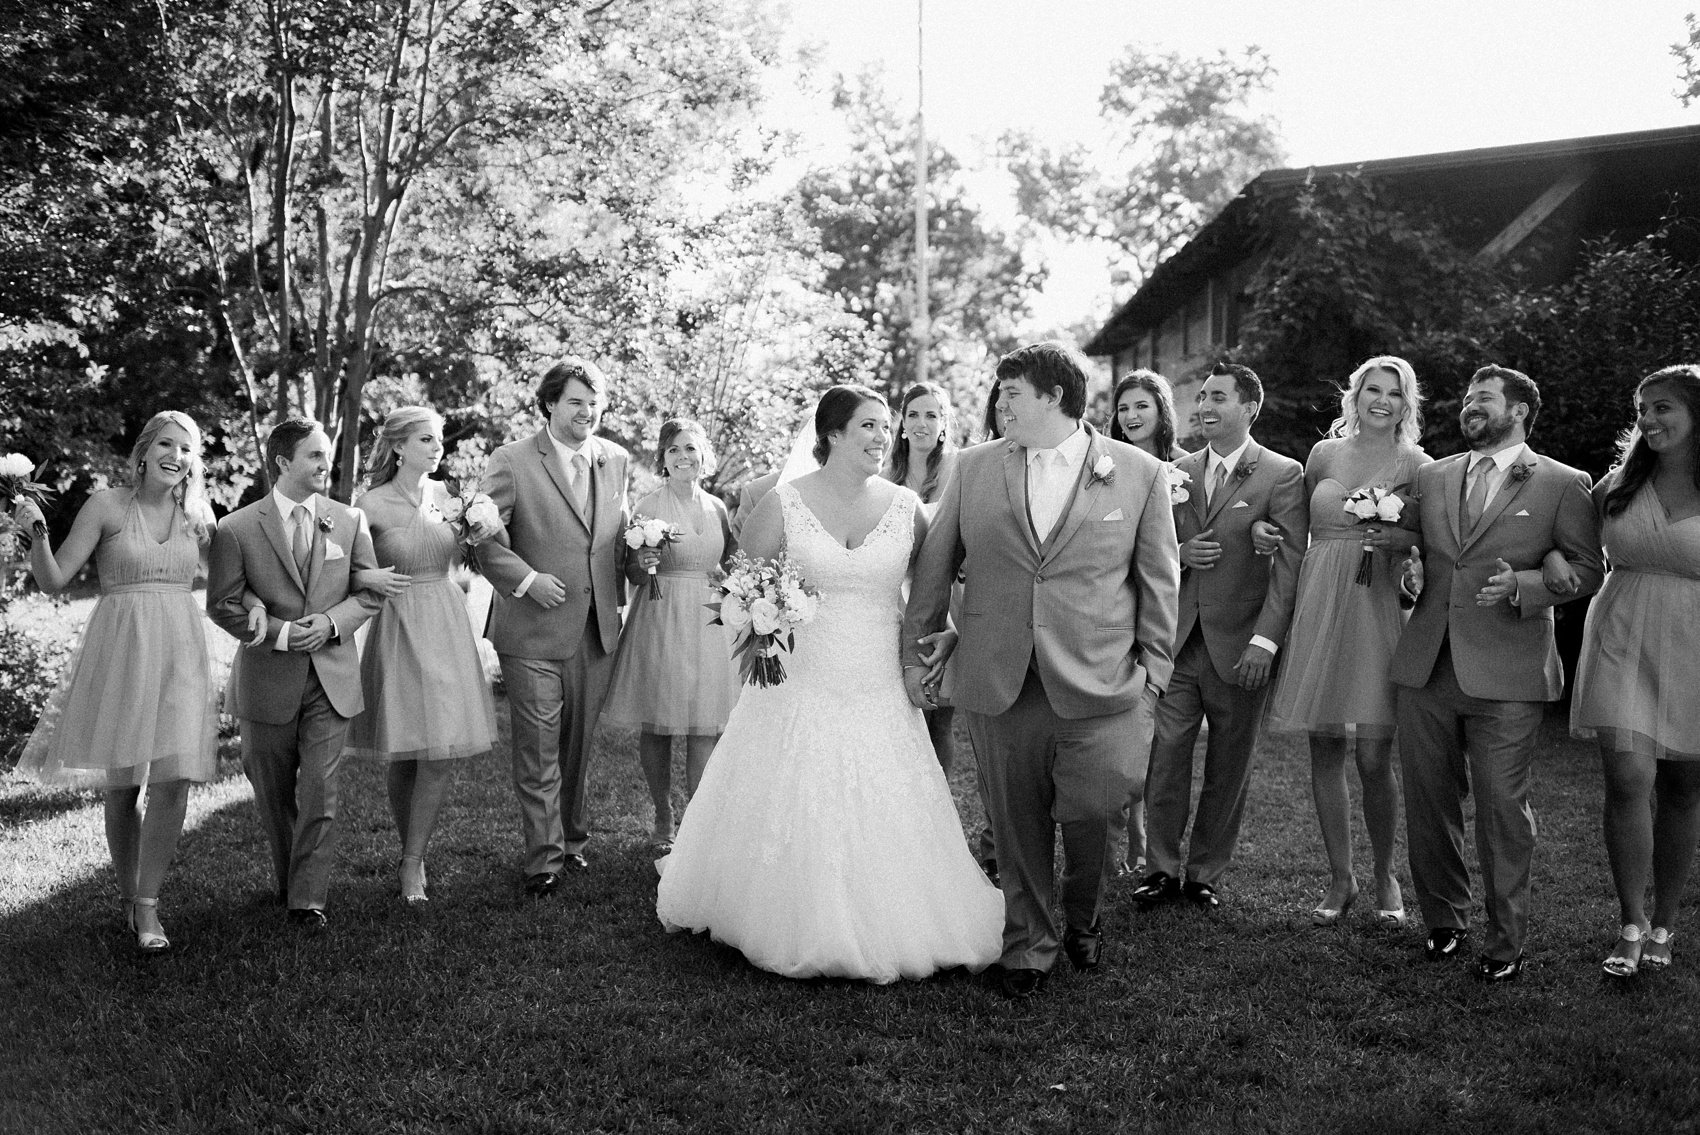 columbia_wedding_photographer_0305.jpg